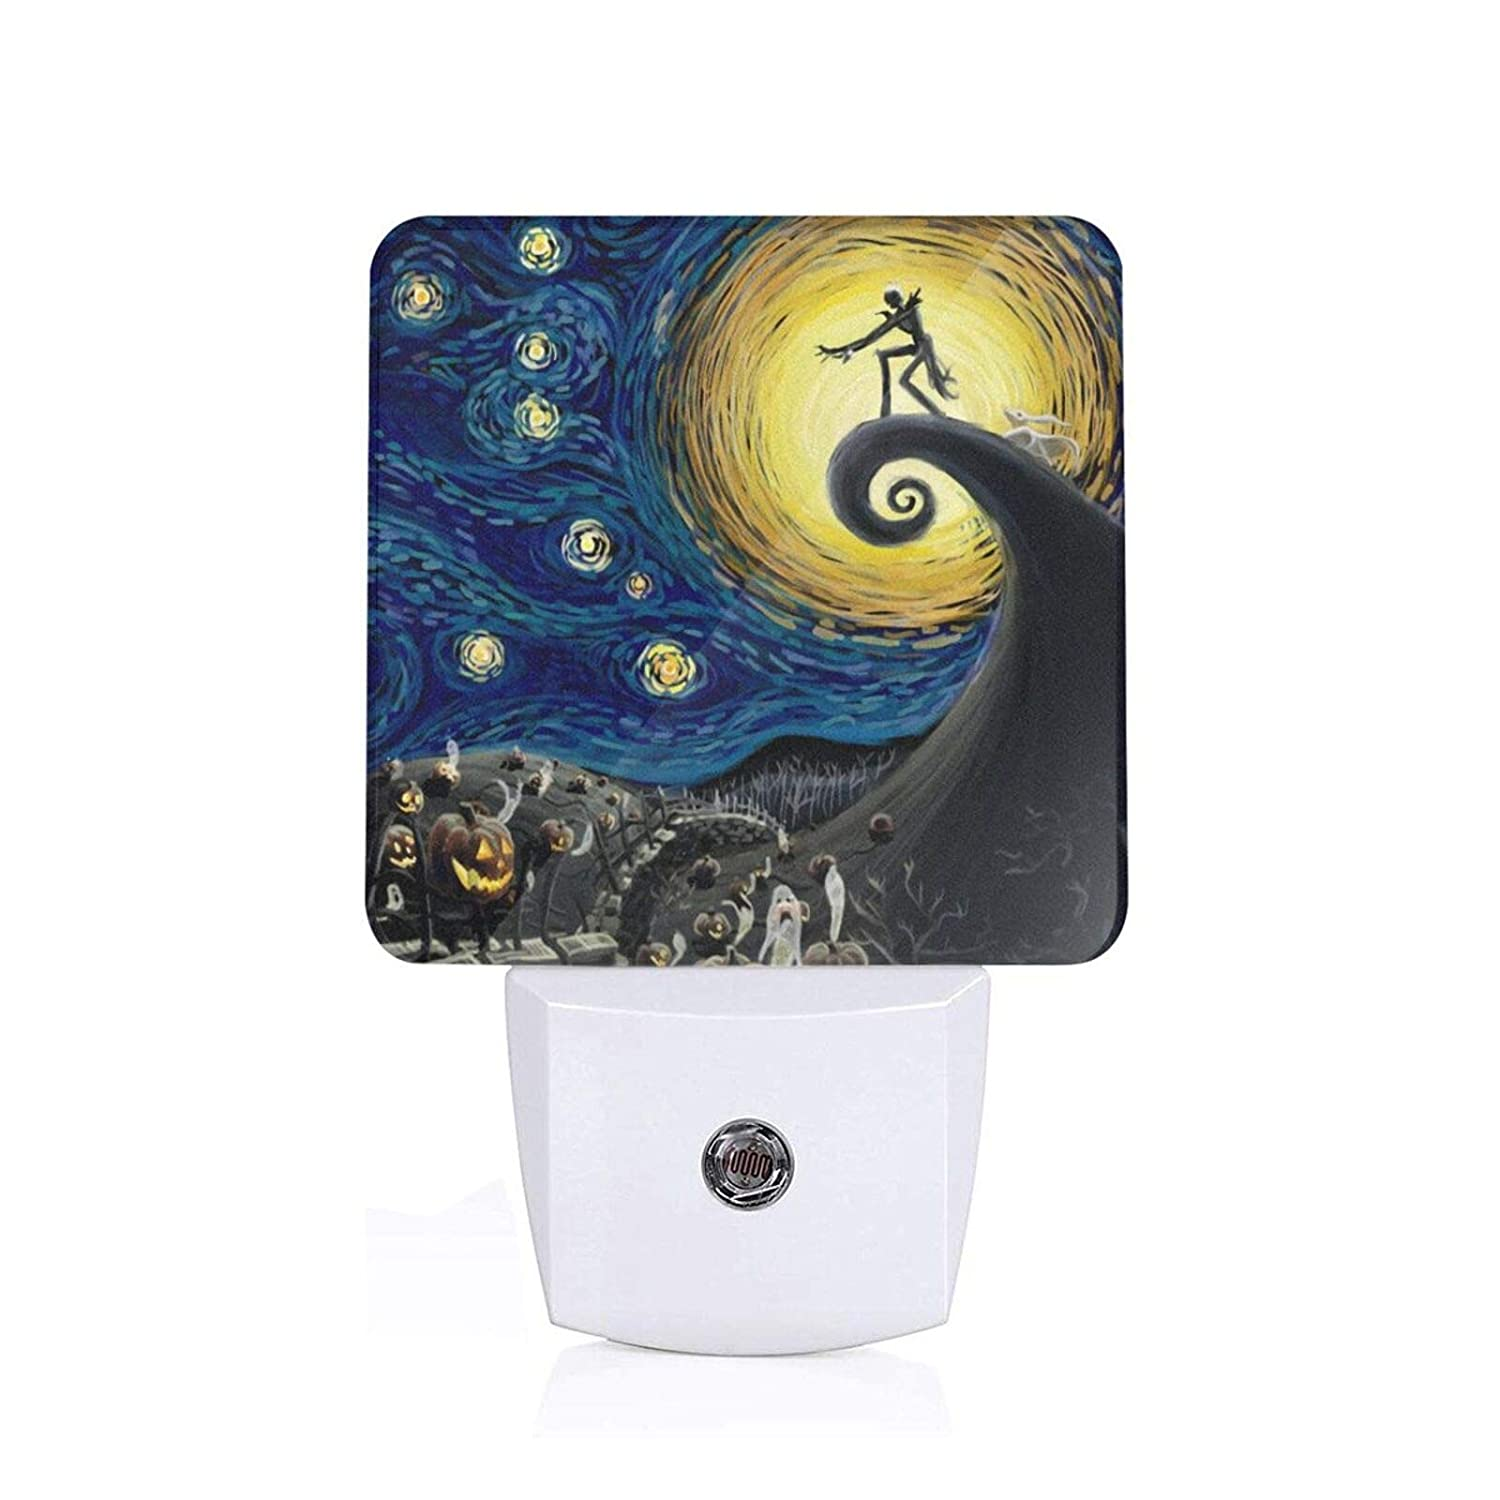 The Nightmare Before Christmas The Starry Night Night Light Plug in White LED Lamp with Dusk to Dawn Sensor for Home Decor Kids Bedroom Hallway Bathroom Kitchen